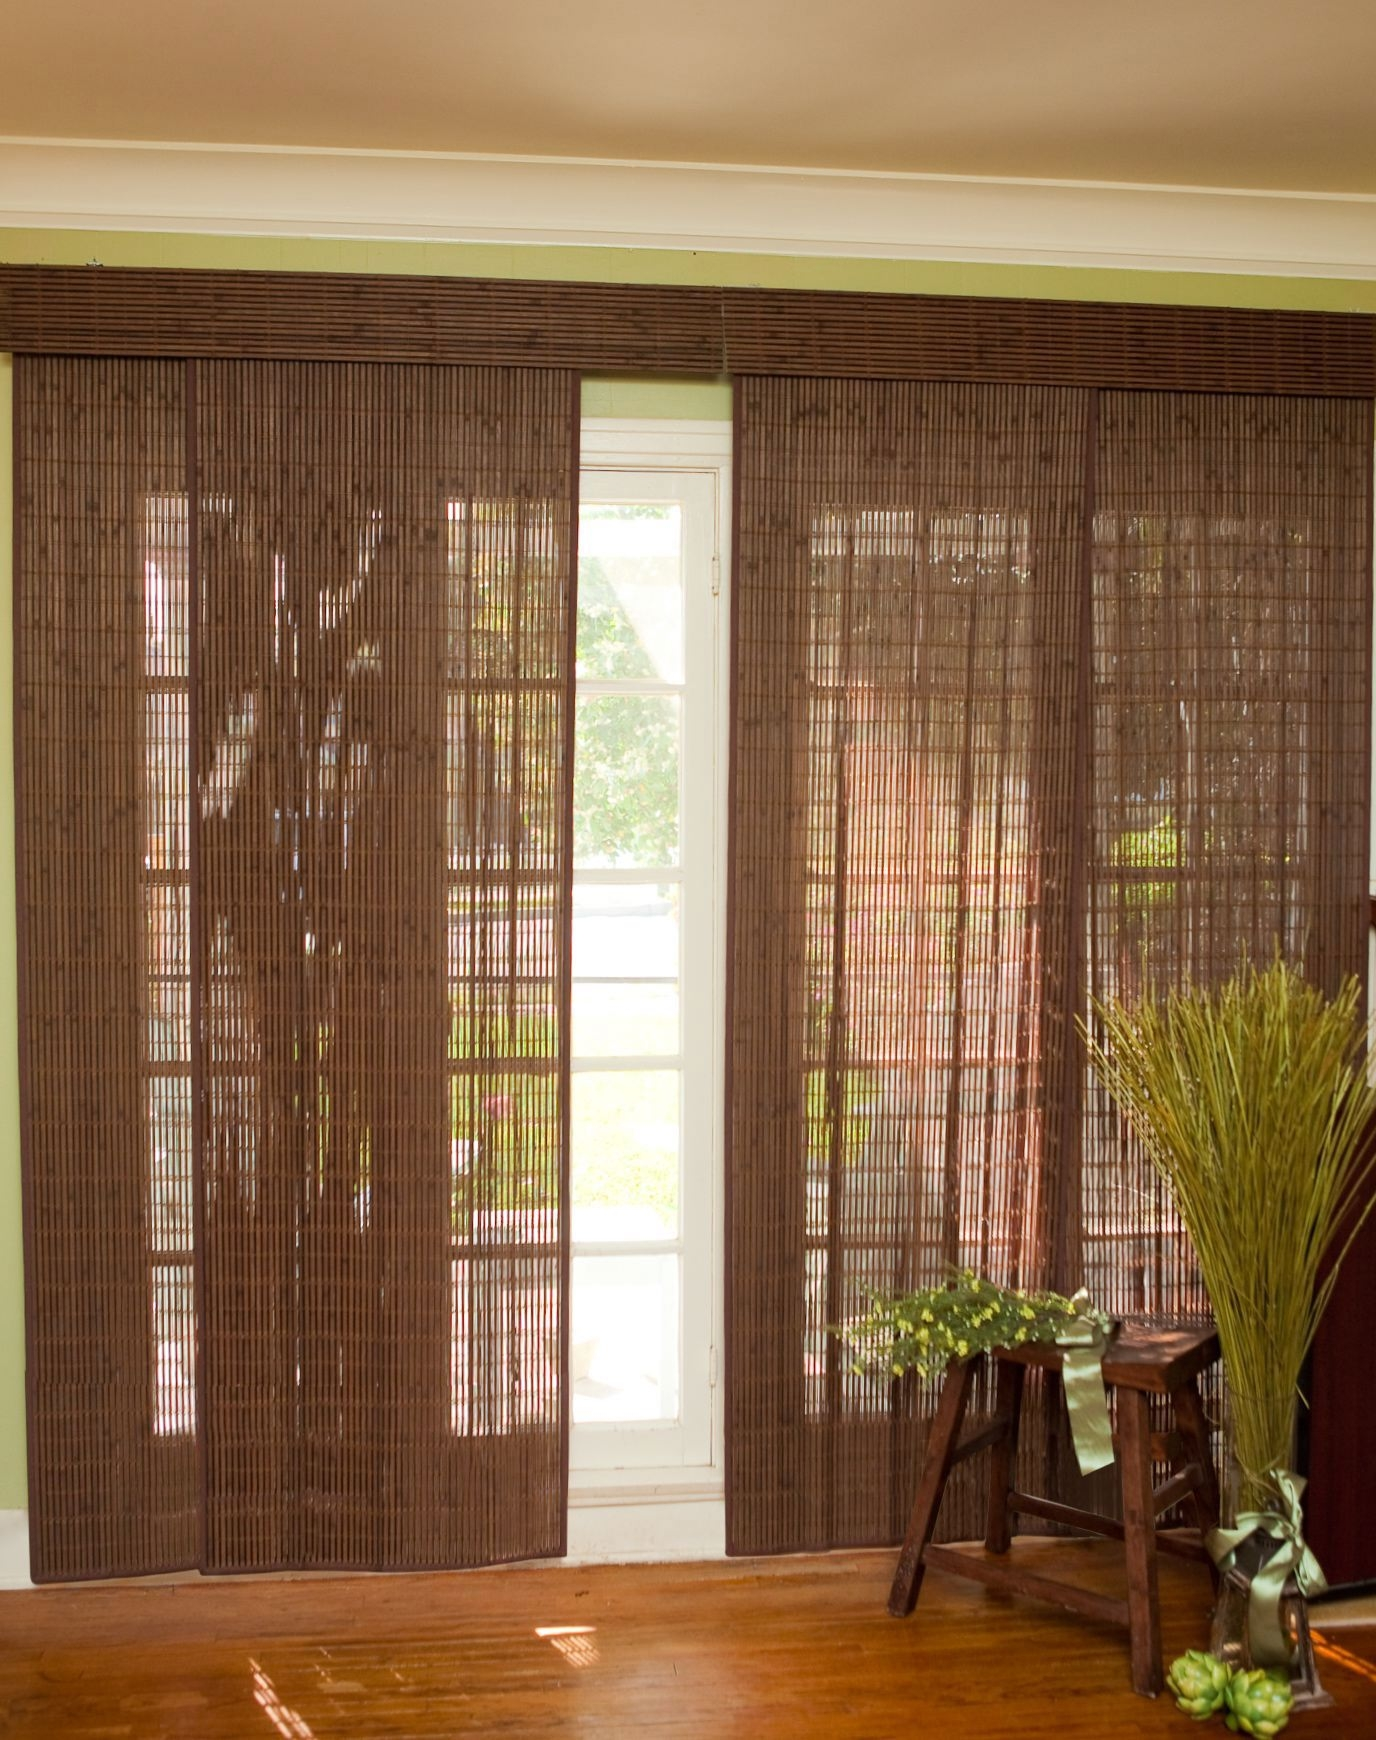 Bamboo Vertical Blinds Sliding Glass Doors Sliding Doors